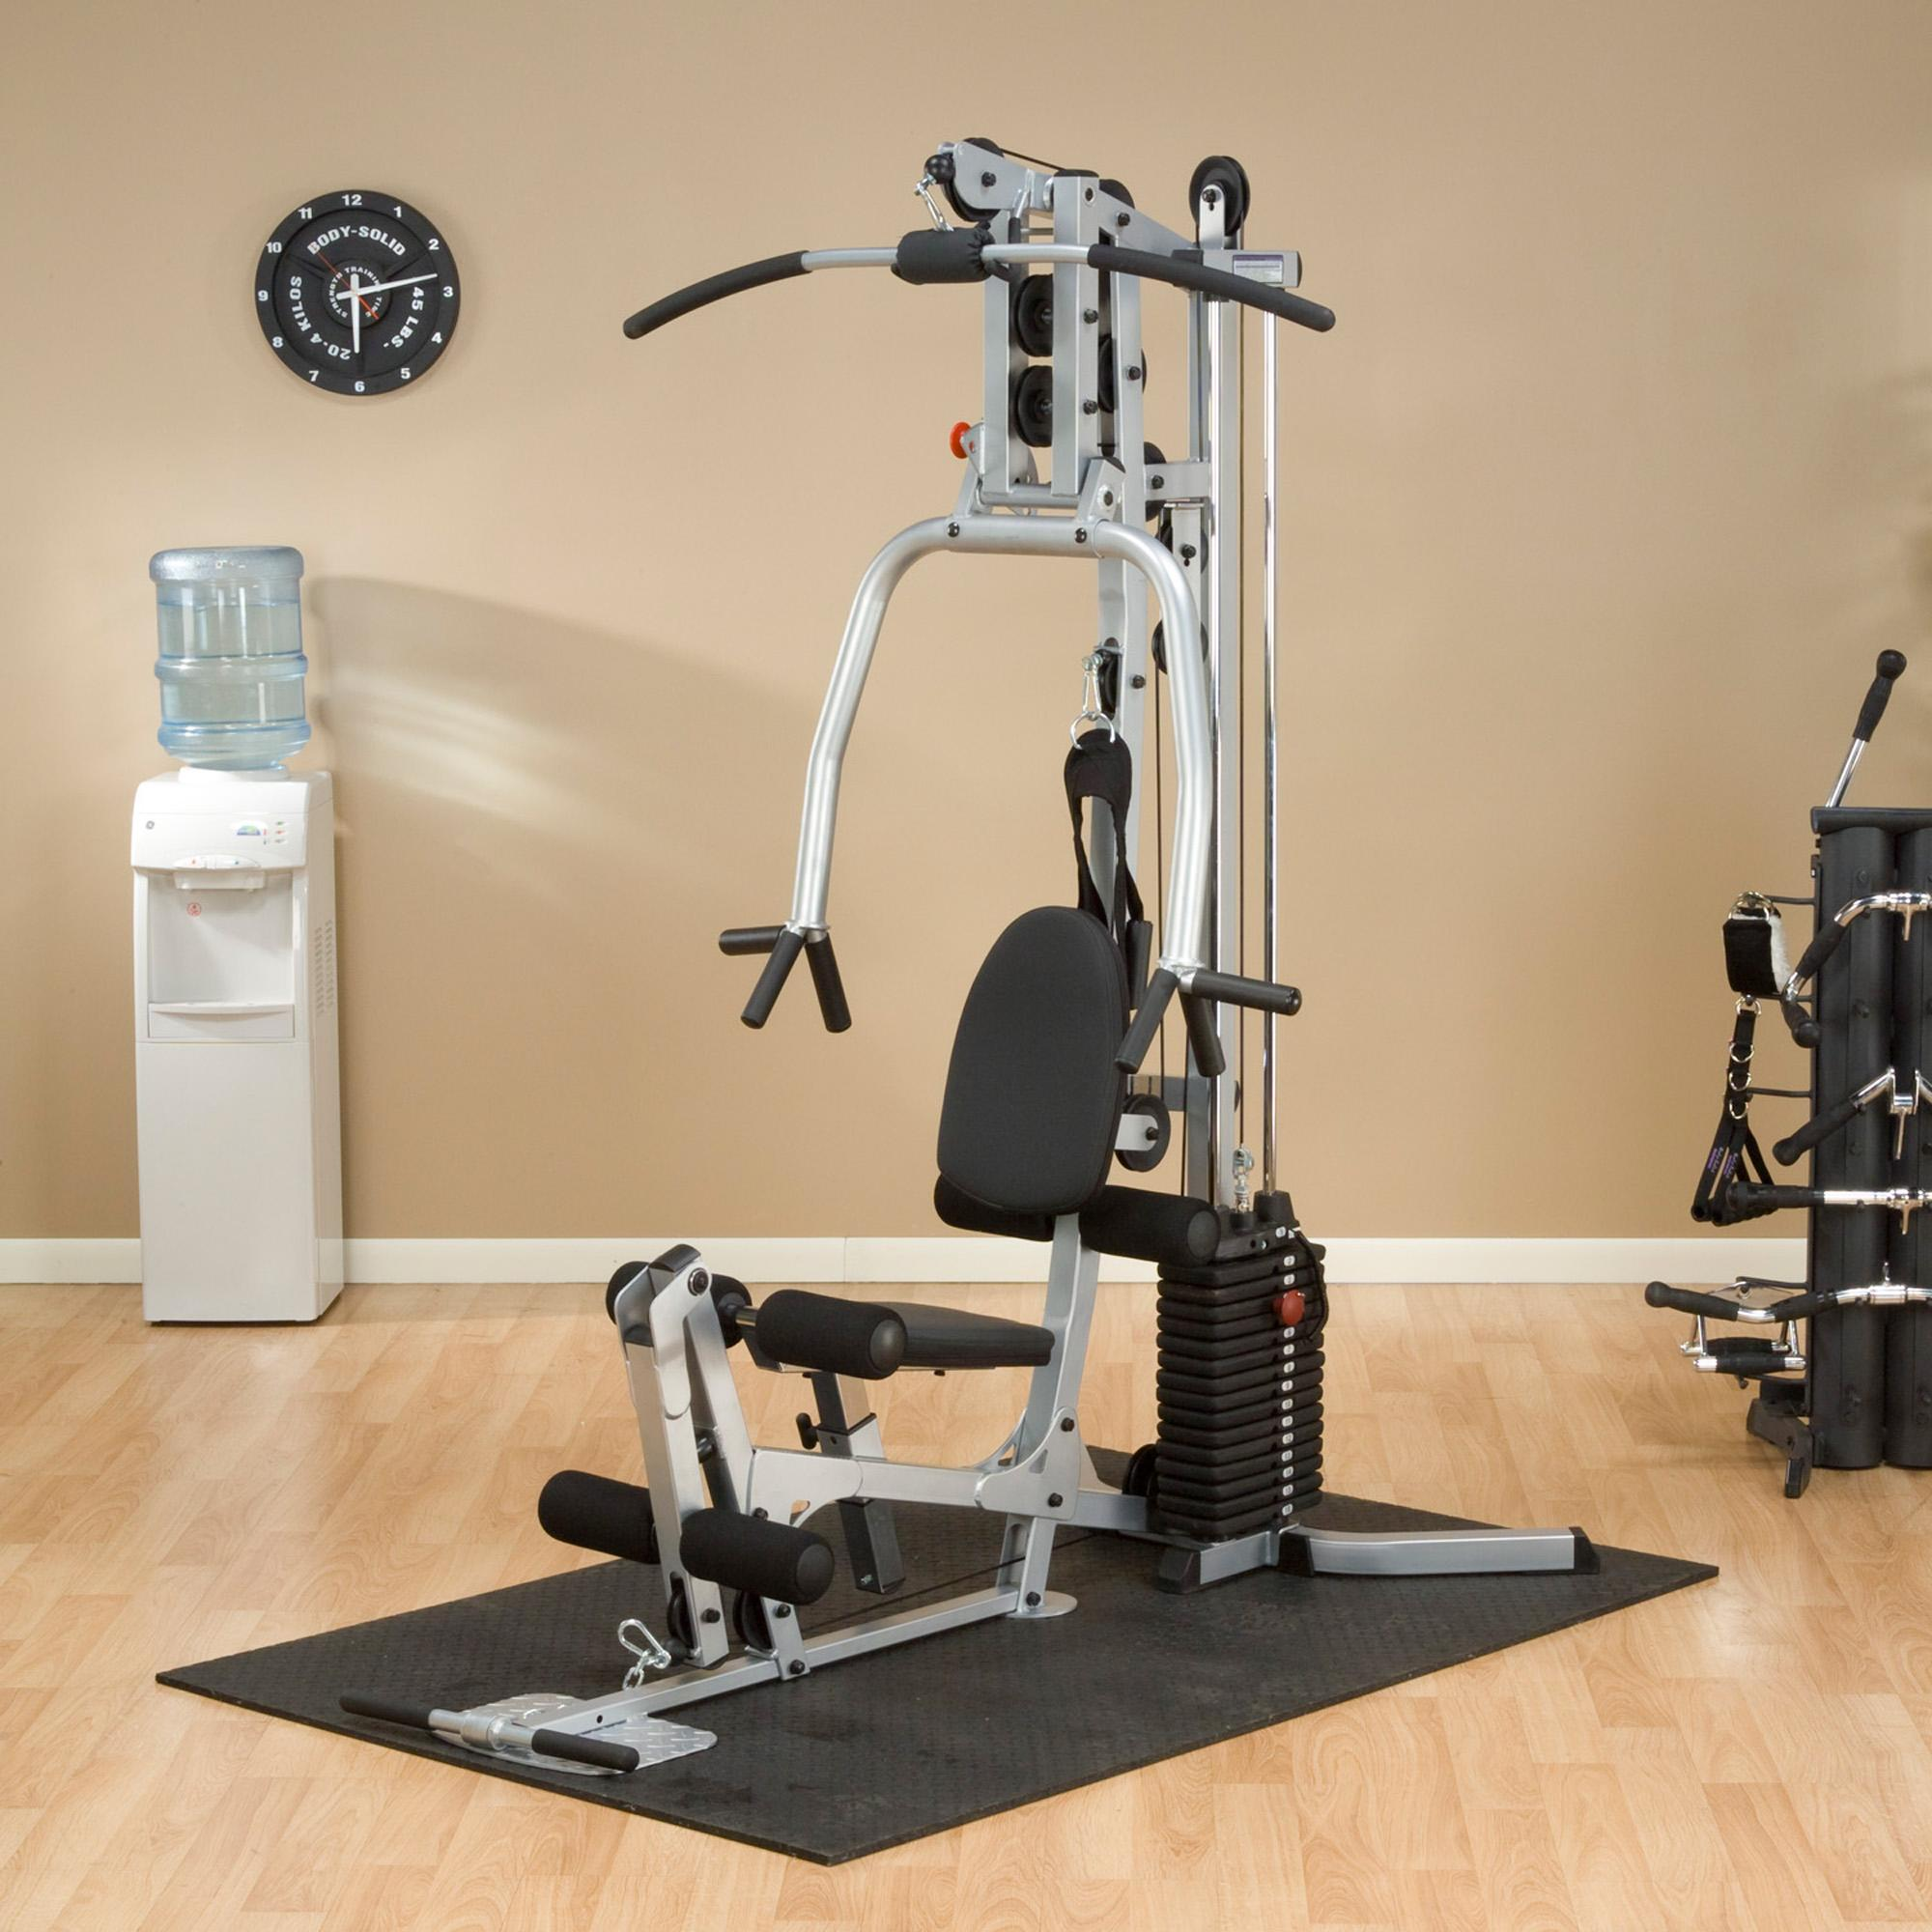 Home Gym Compact: Amazon.com : Powerline By Body-Solid Easy-Assembly Home